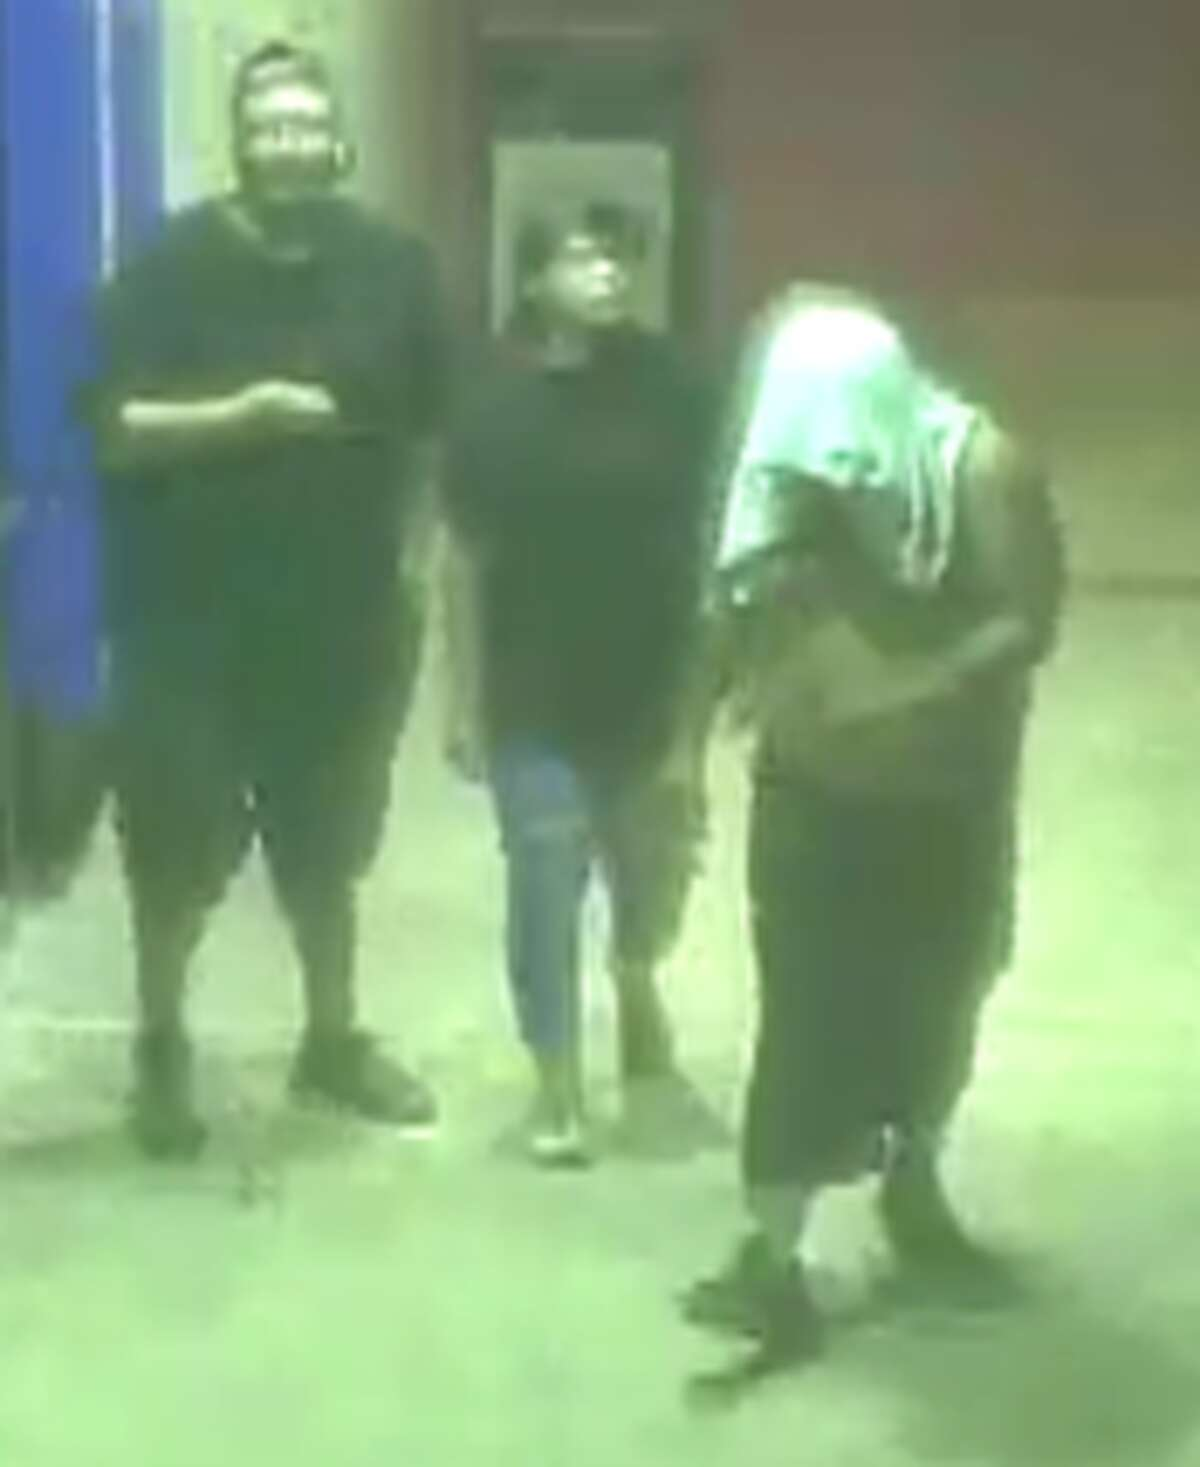 Crime Stoppers is offering a reward for the identity of individuals they say were involved in a robbery.